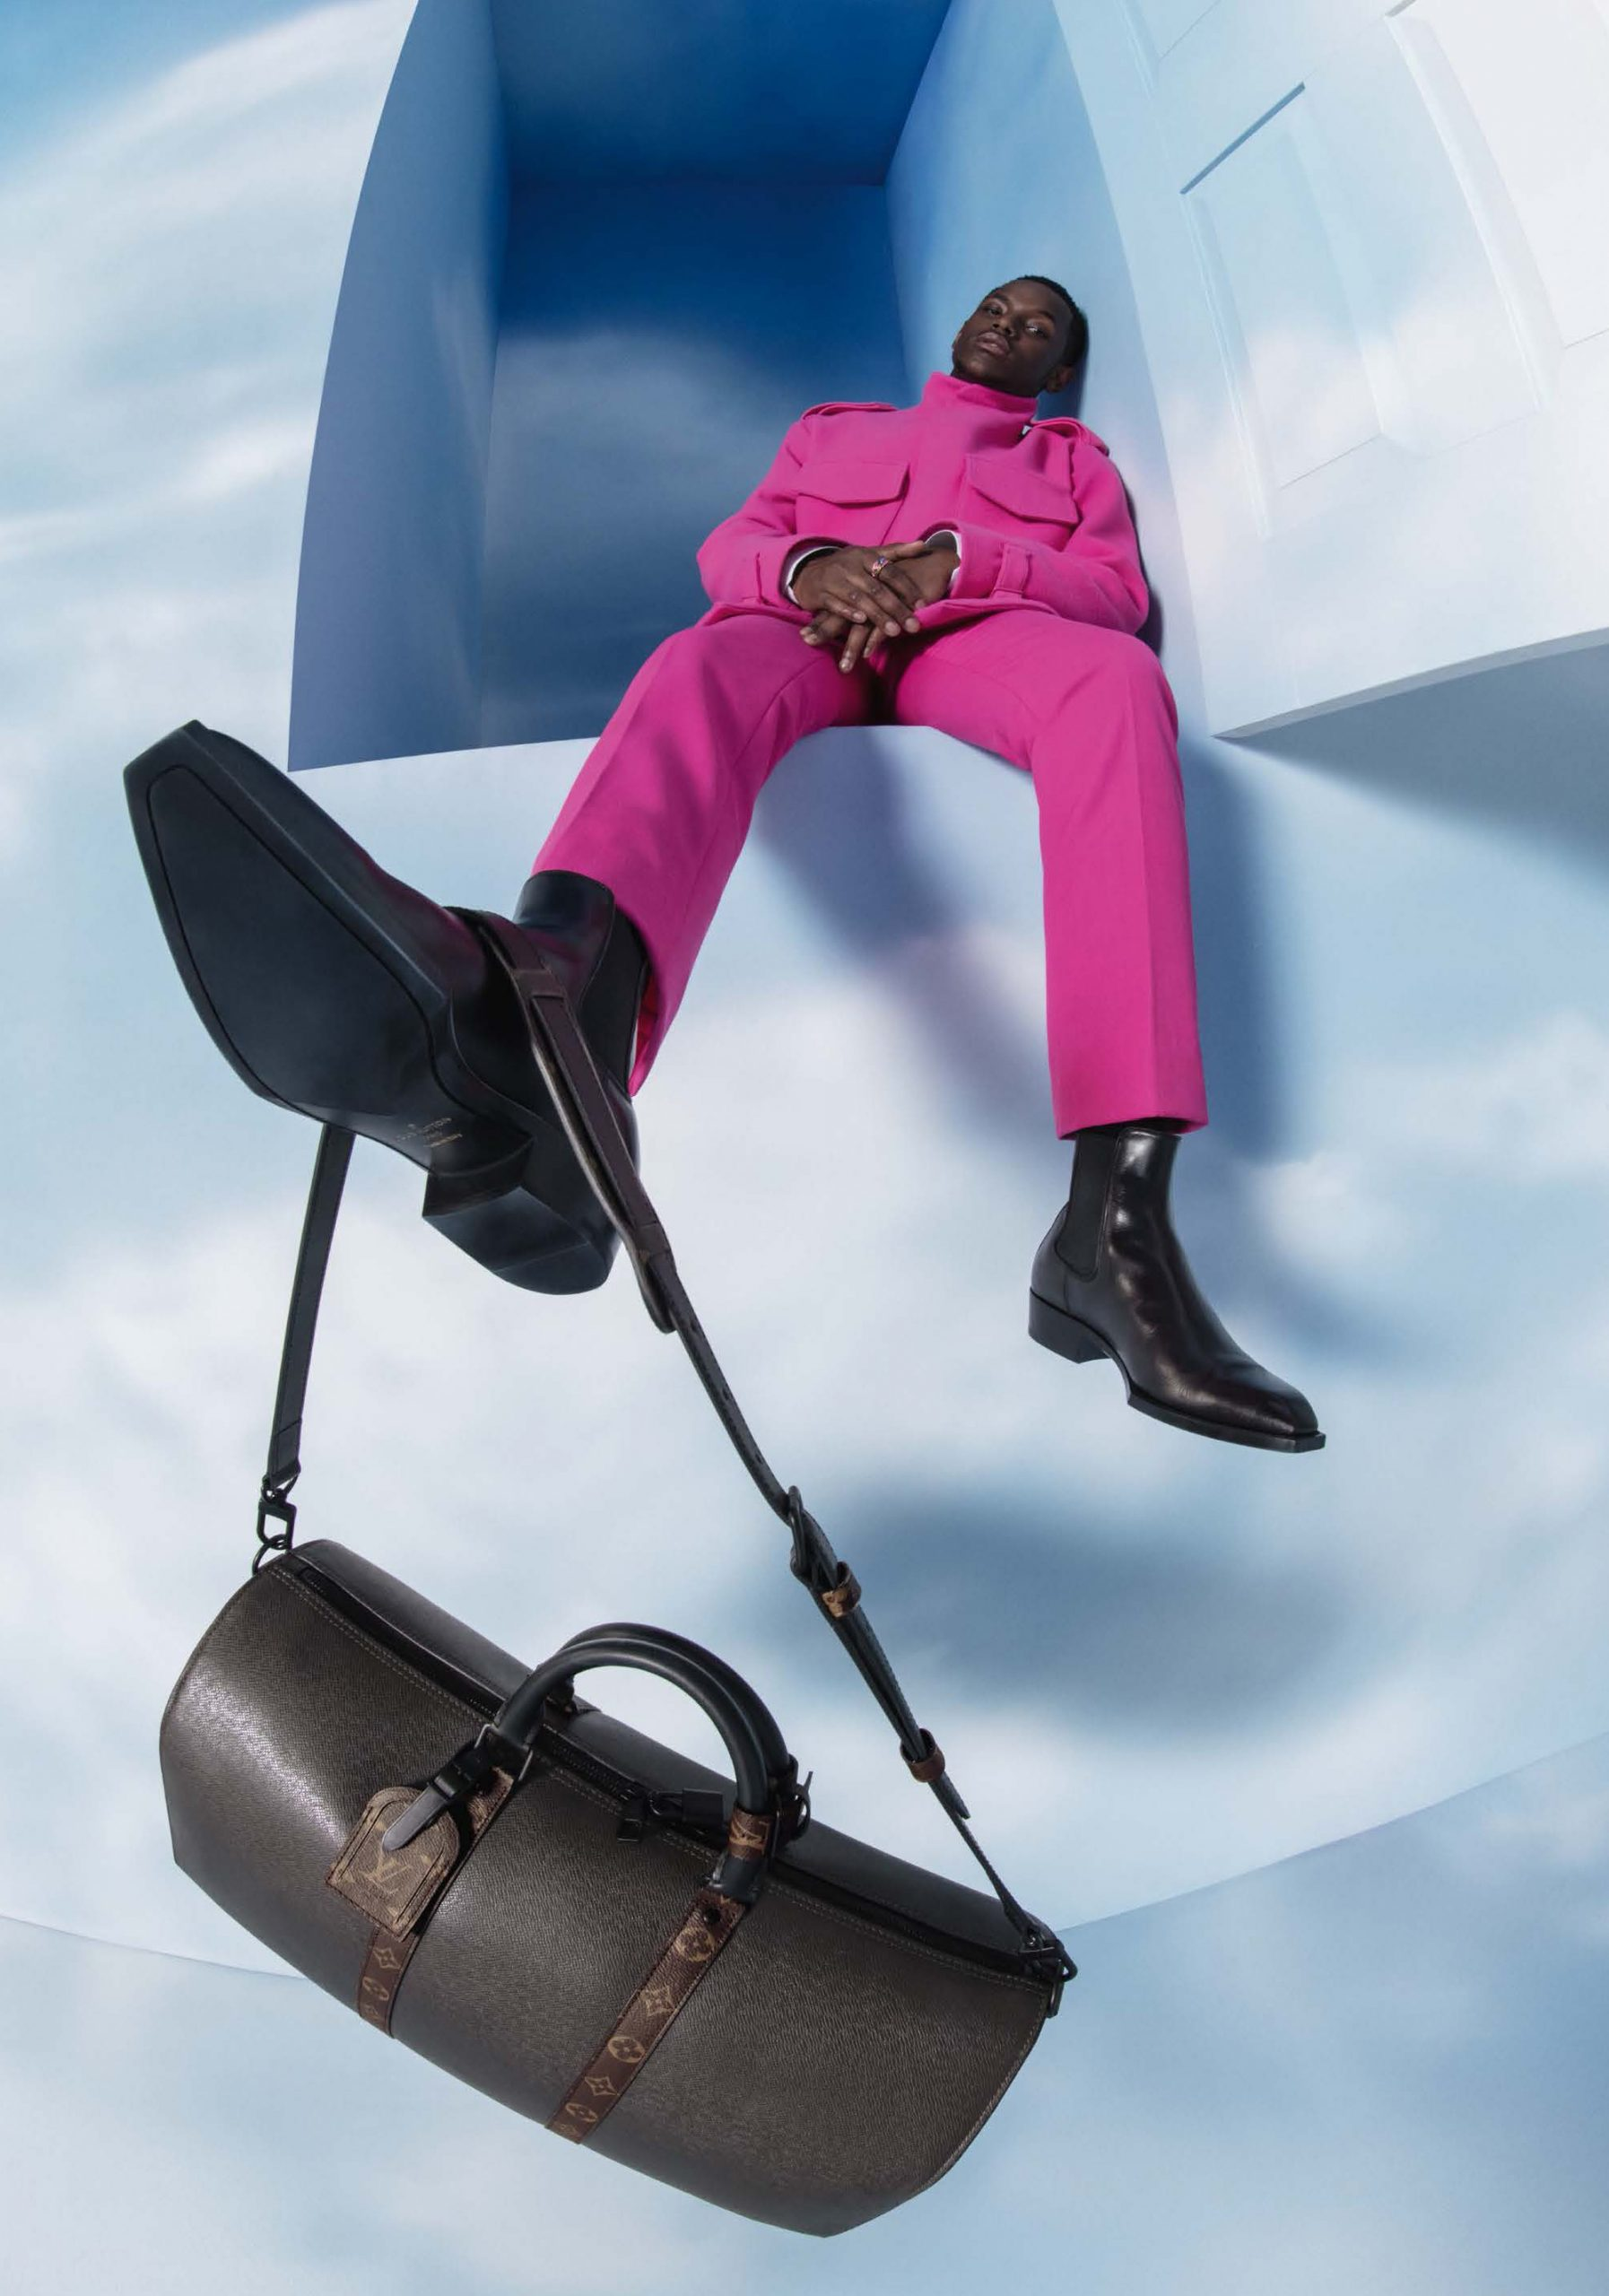 Louis Vuitton Men's Fall 2020 Ad Campaign by Tim Walker Film & Photos